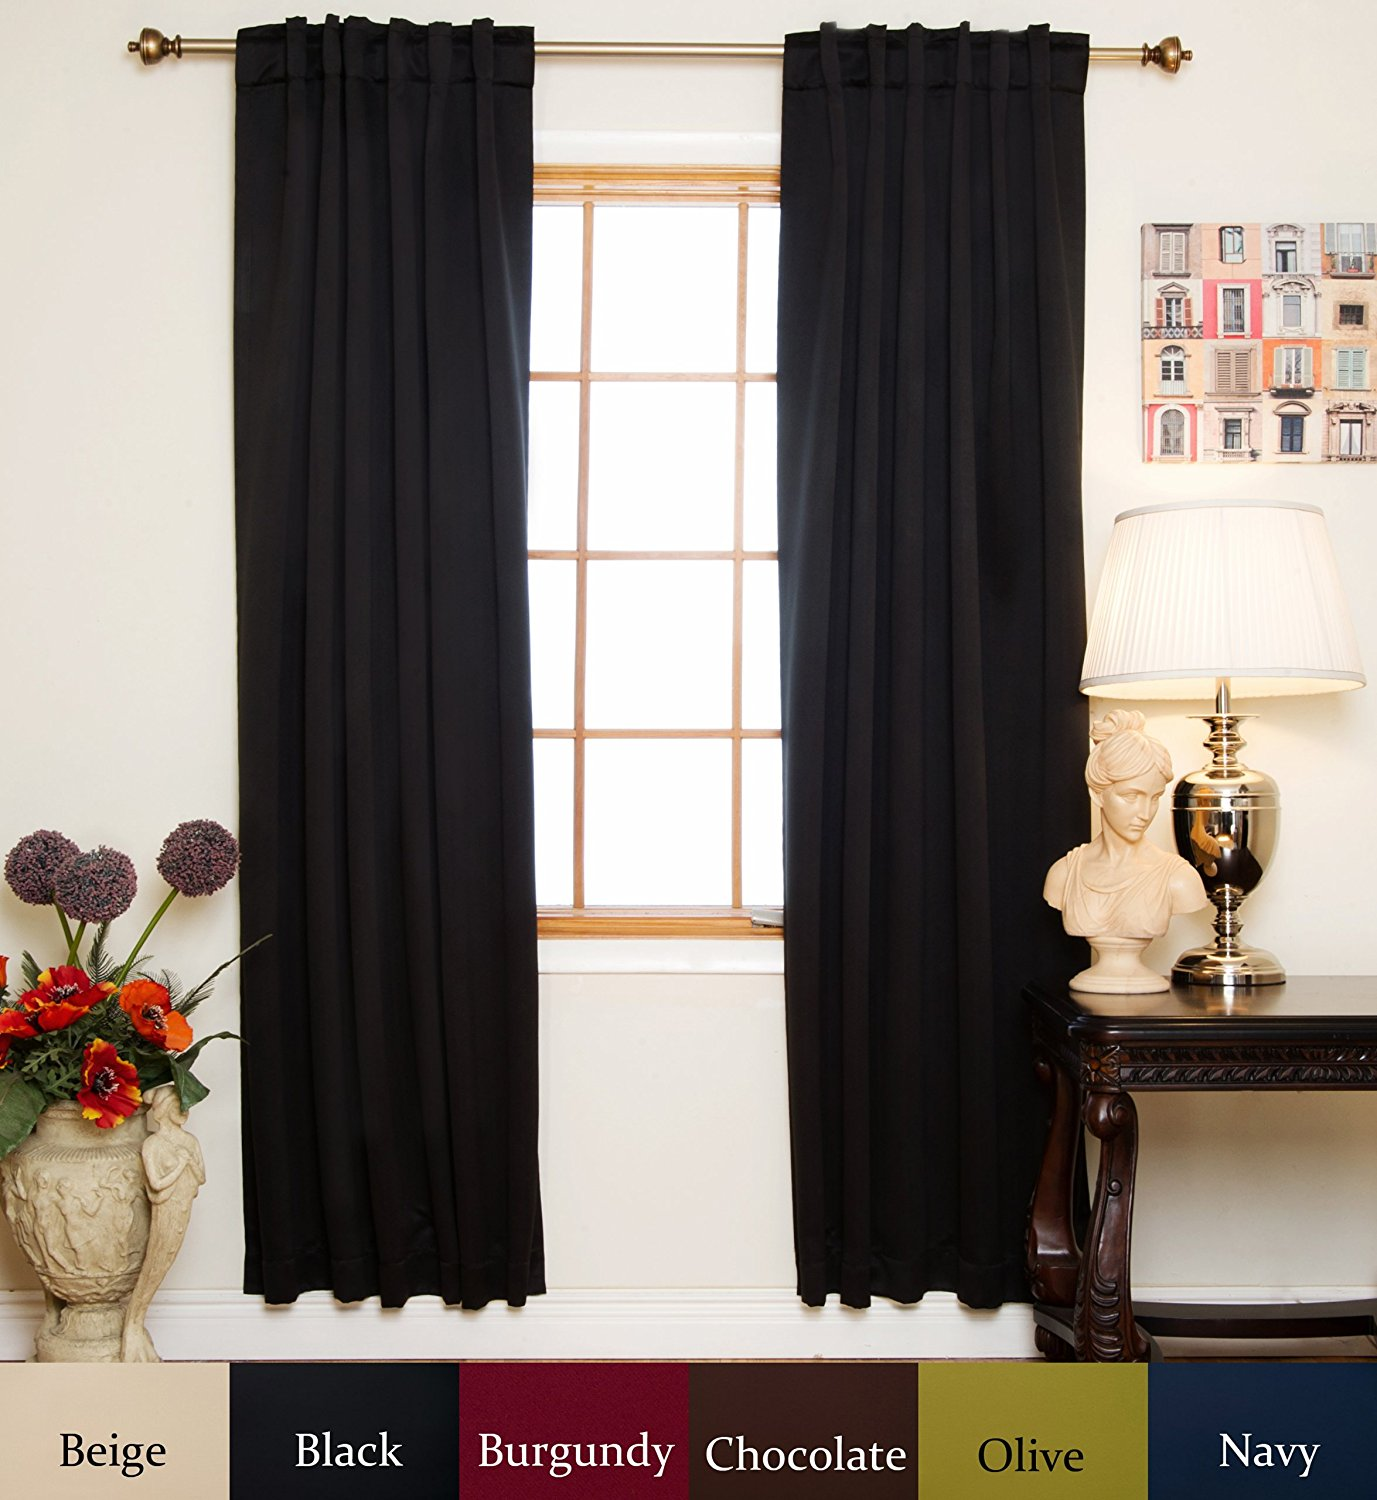 Cold Weather Curtains | Thermal Drapes Curtains | Thermal Insulated Curtains